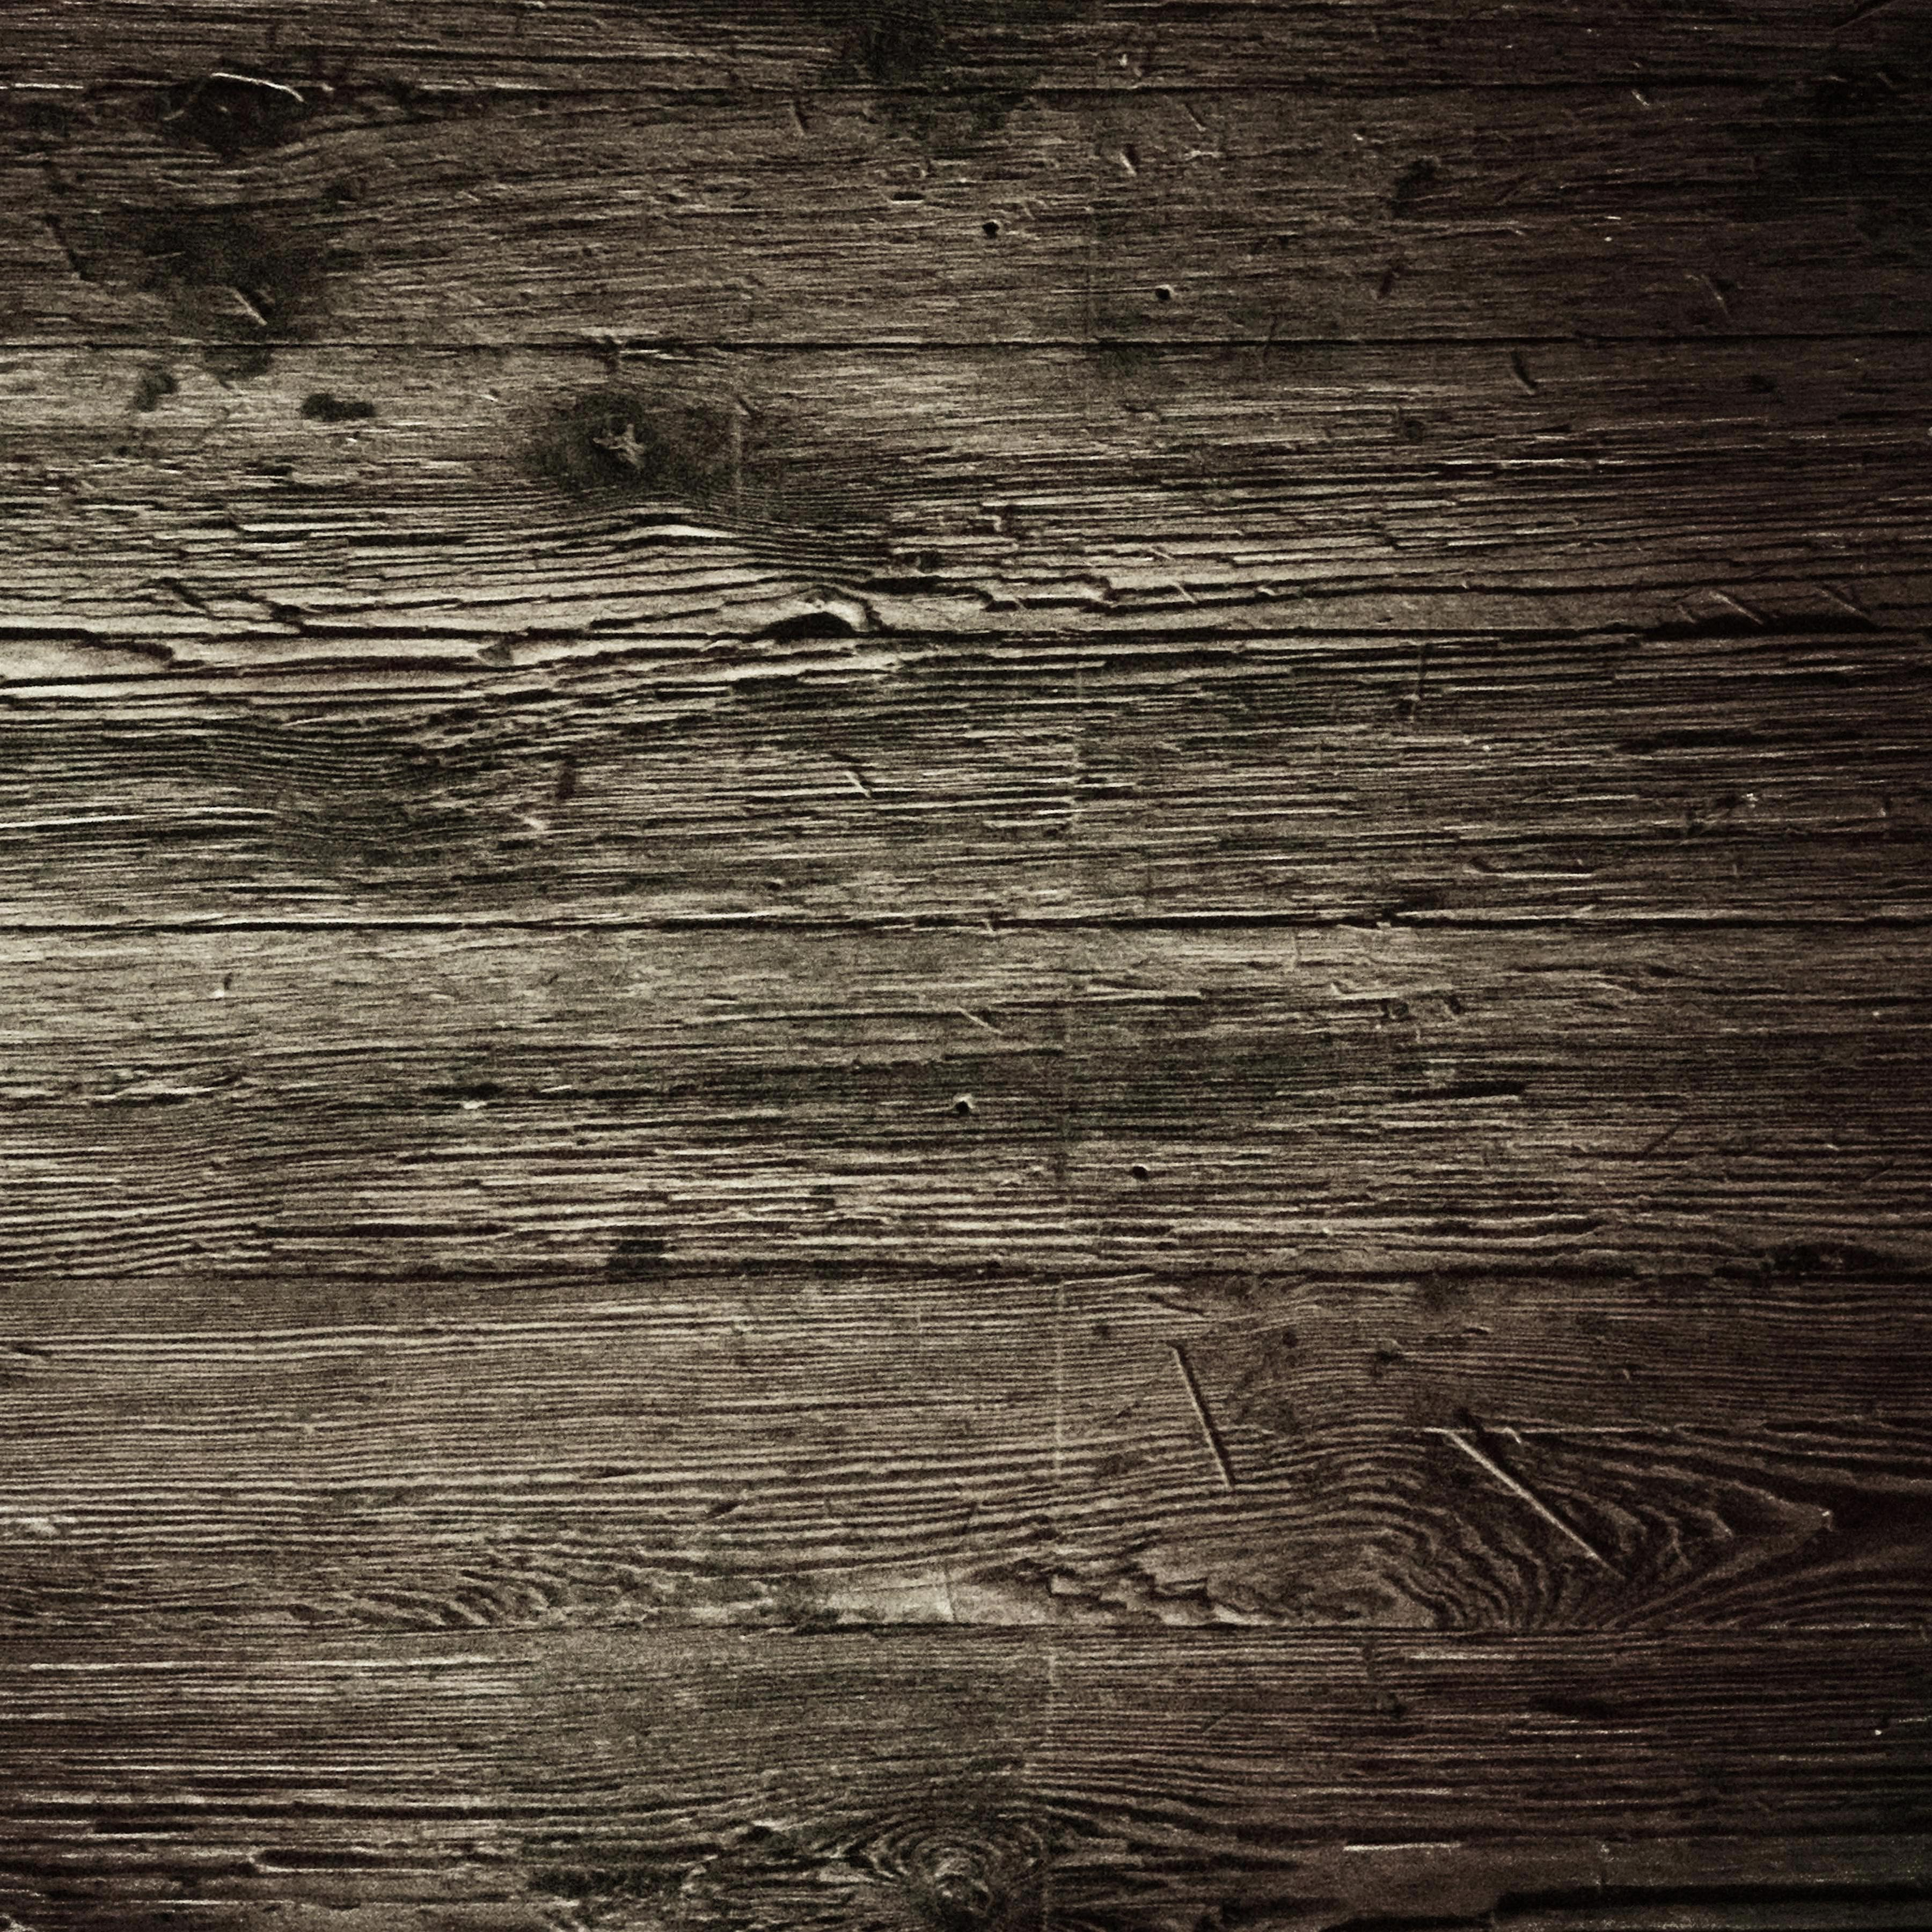 Wood surface photo